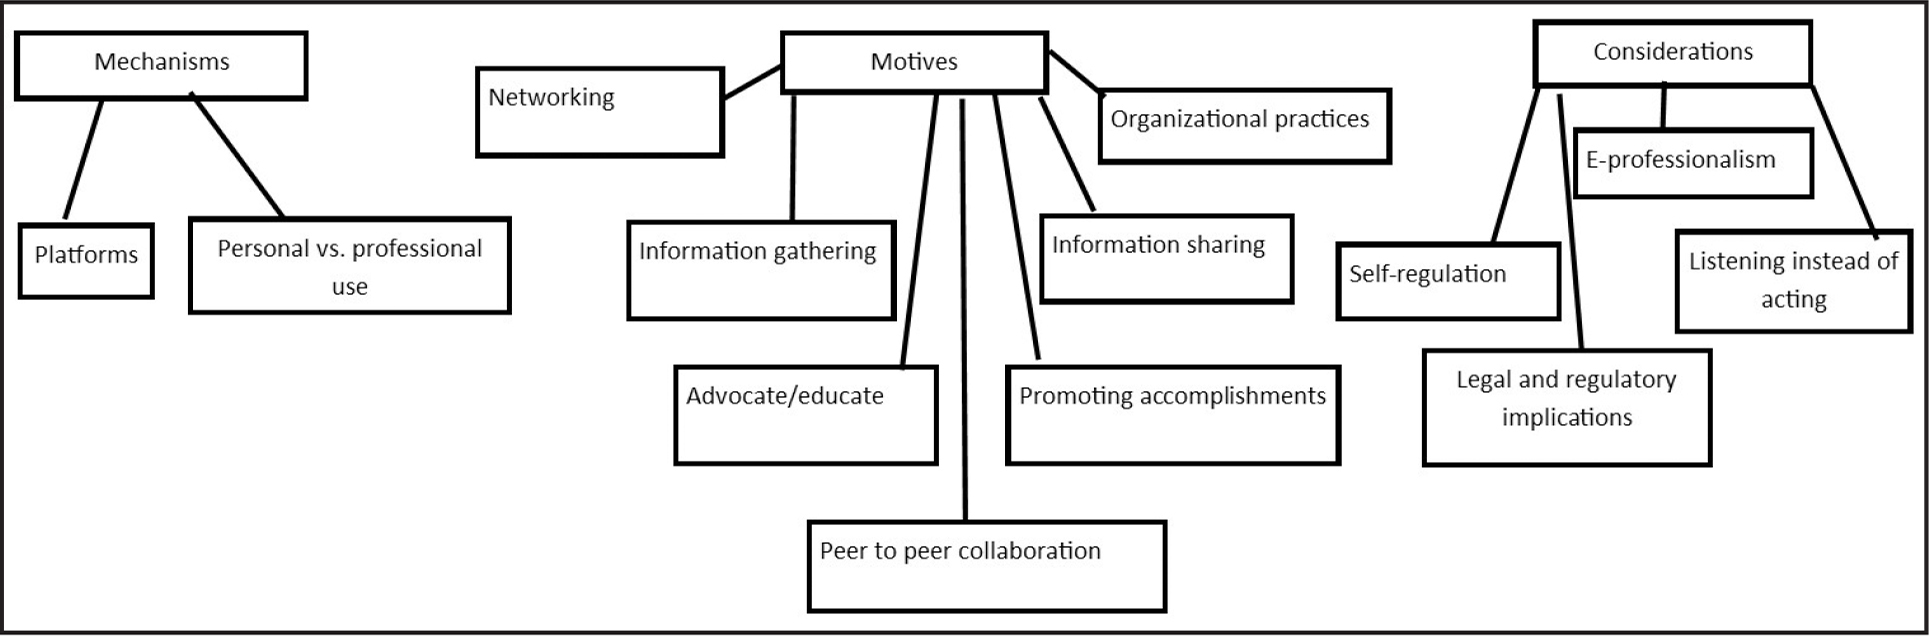 Themes and subthemes derived from data analysis.